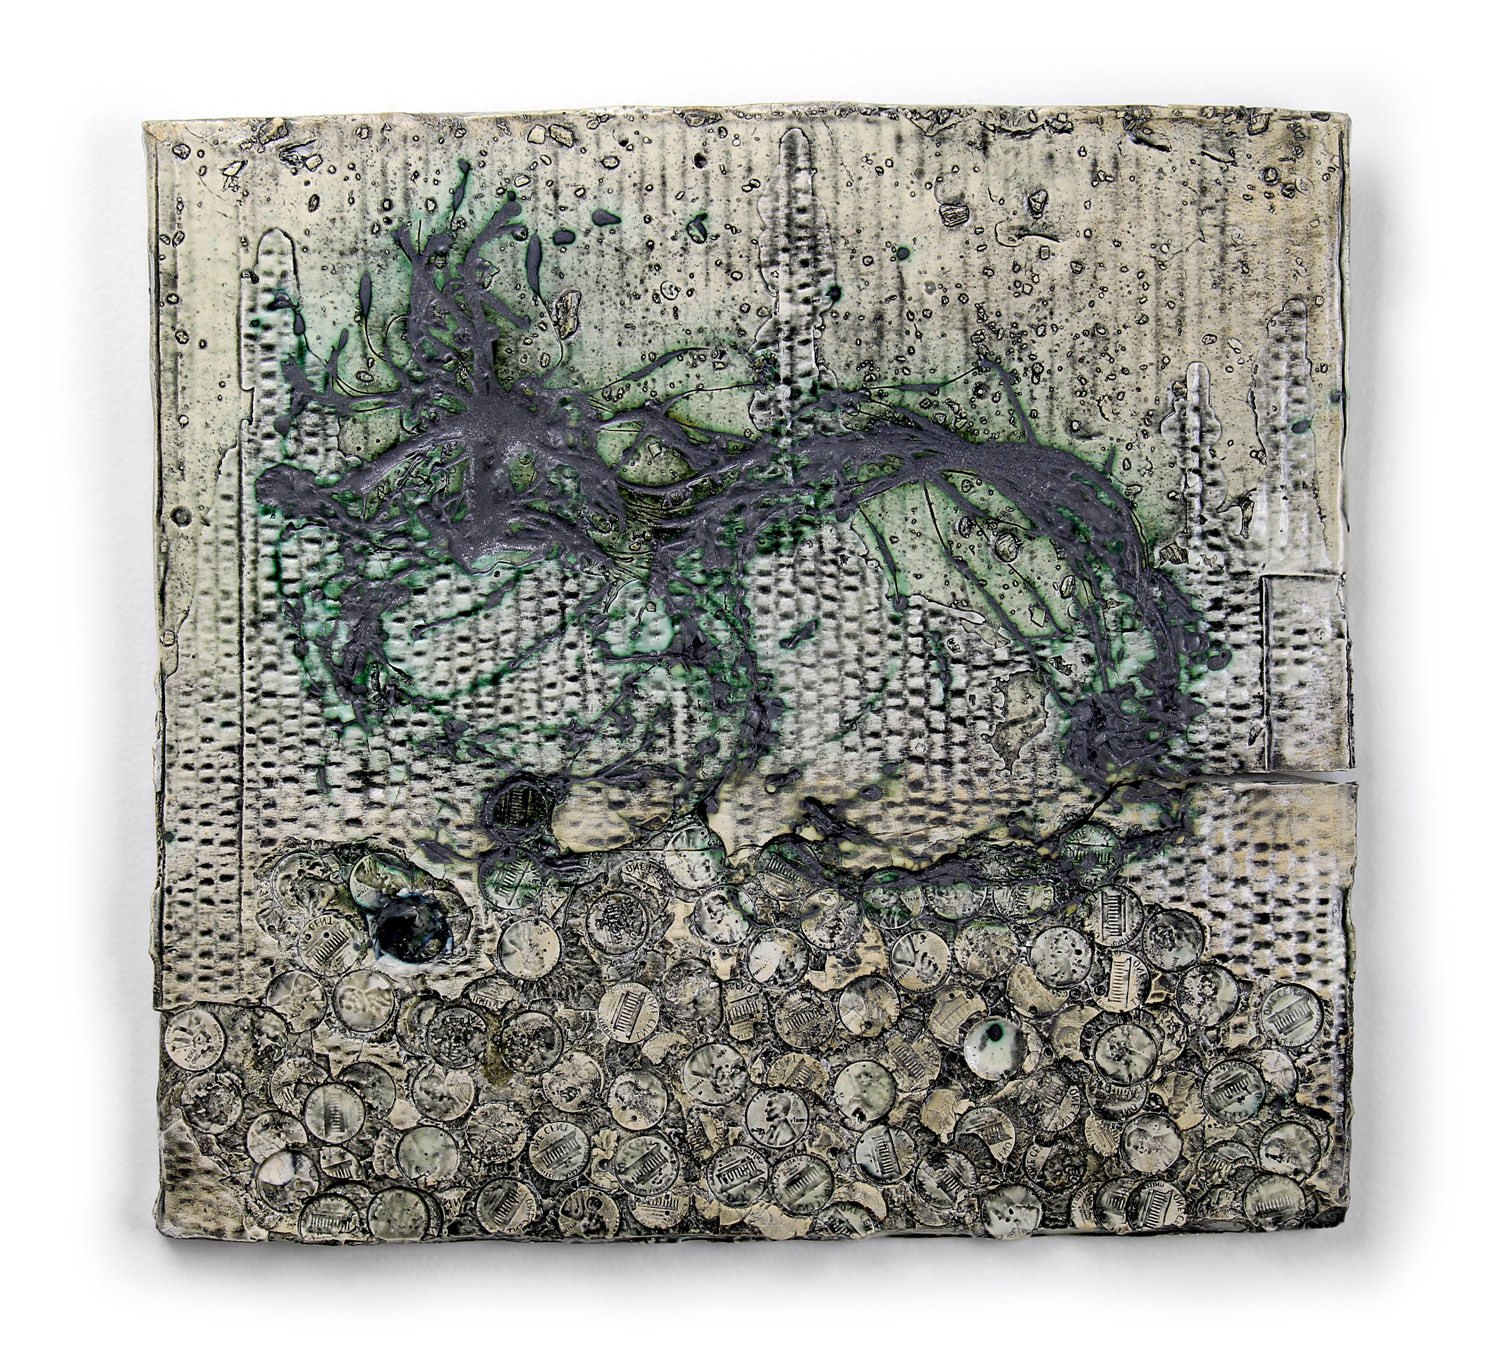 "Jonathan Mess,  Waterstruck Slab No.20 , Reclaimed ceramic materials, 12.5"" x 13.25"" x 1"""